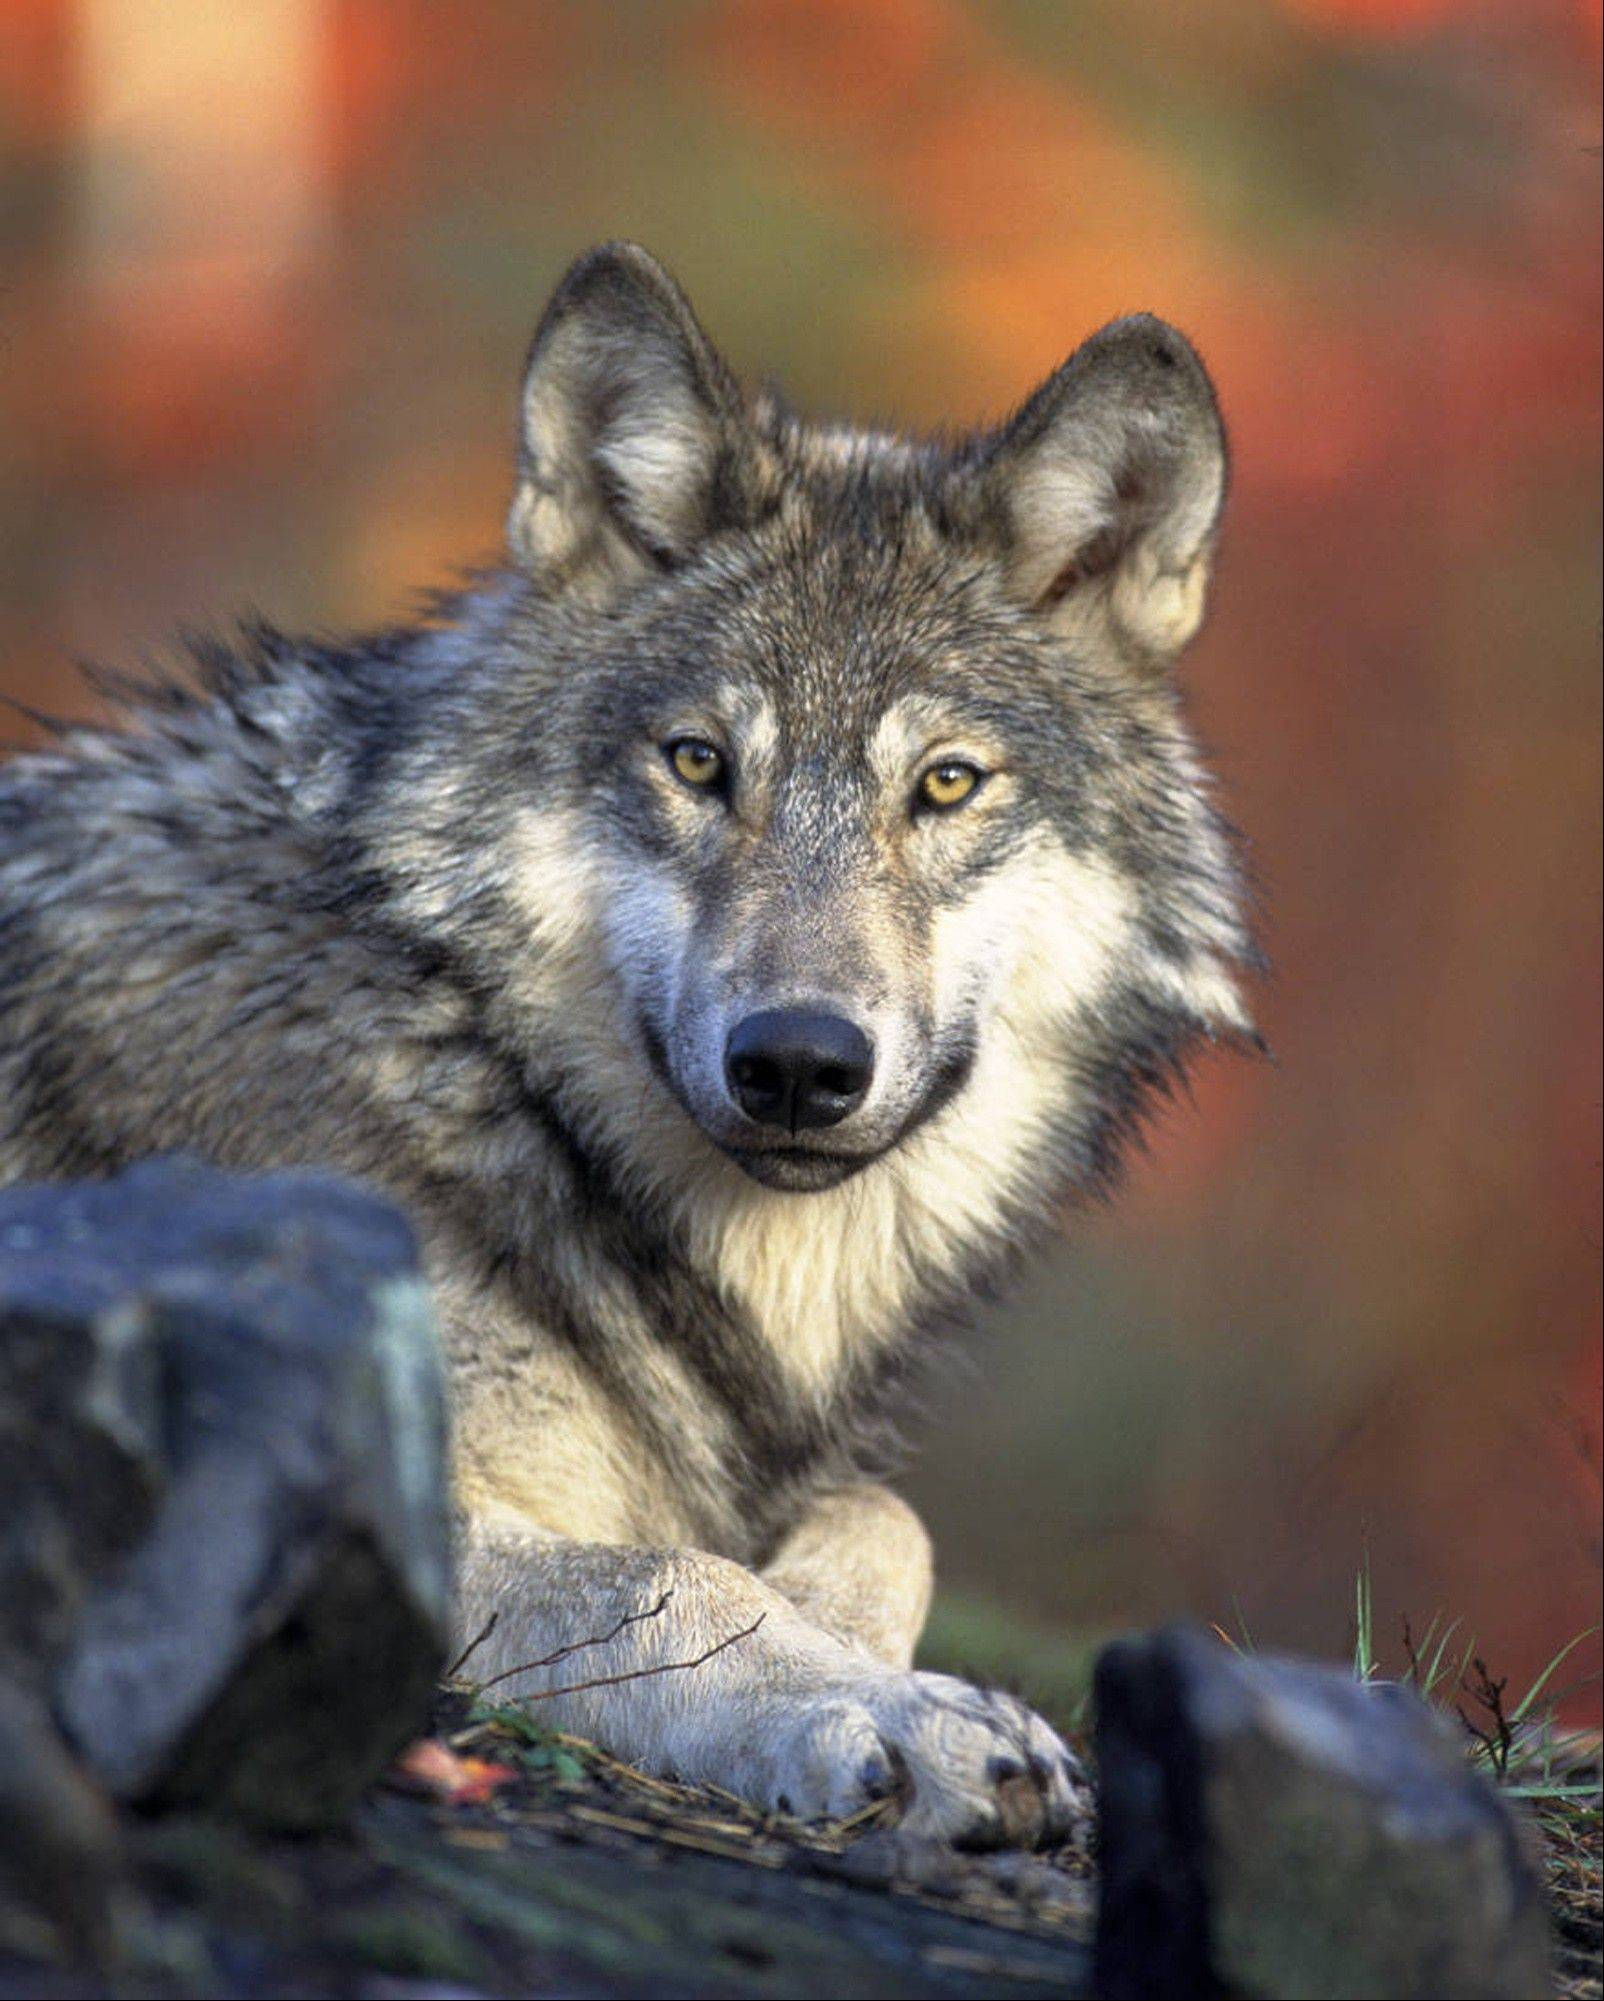 The U.S. Fish and Wildlife Service shows a gray wolf on U.S. soil. The Obama administration on Friday, June 7 proposed lifting most of the remaining federal protections for gray wolves across the mainland states.